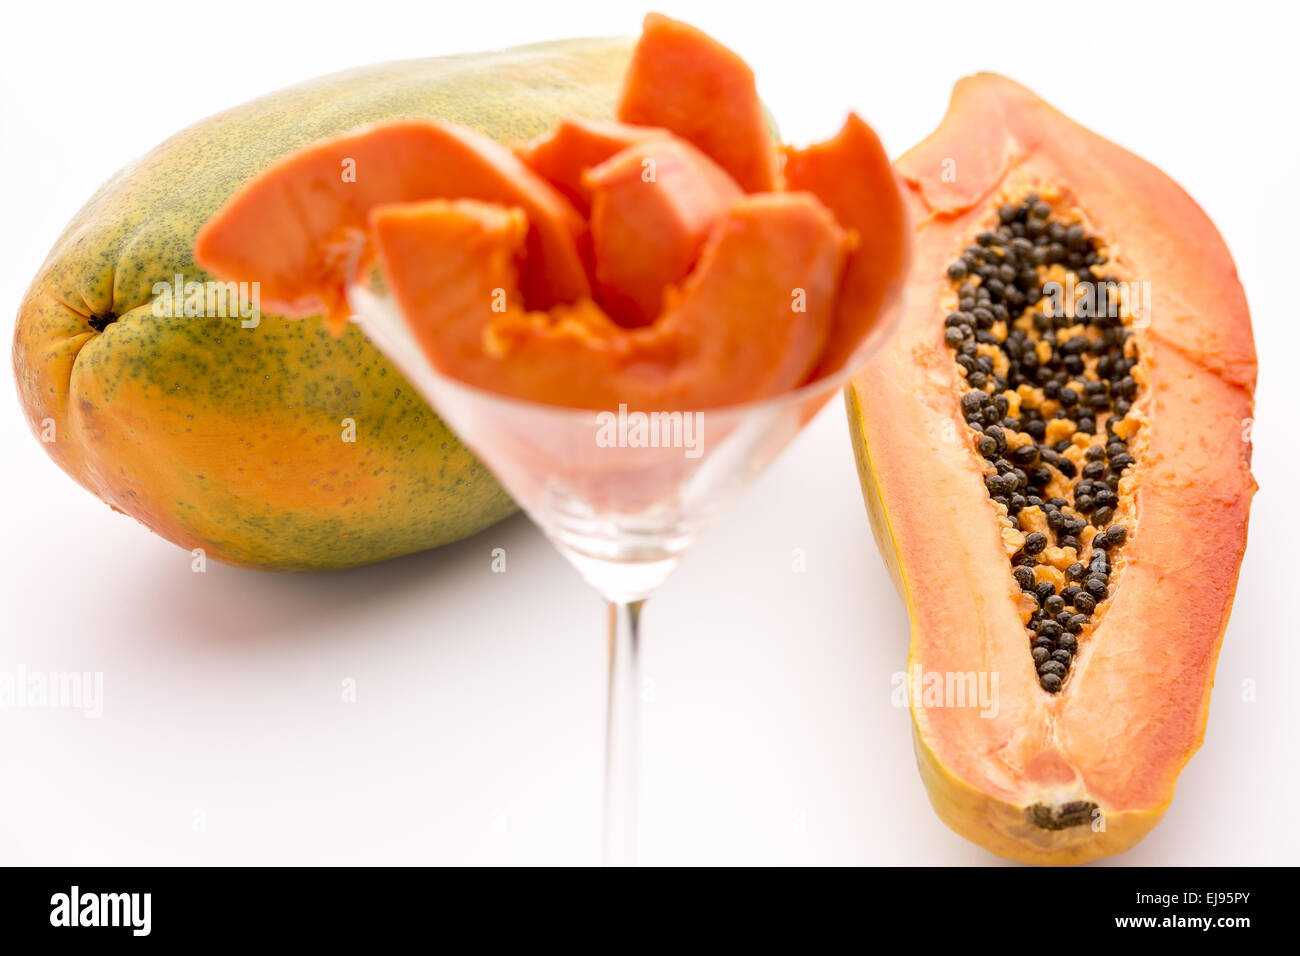 Full of nutrients and papain - the Papaya - Stock Image